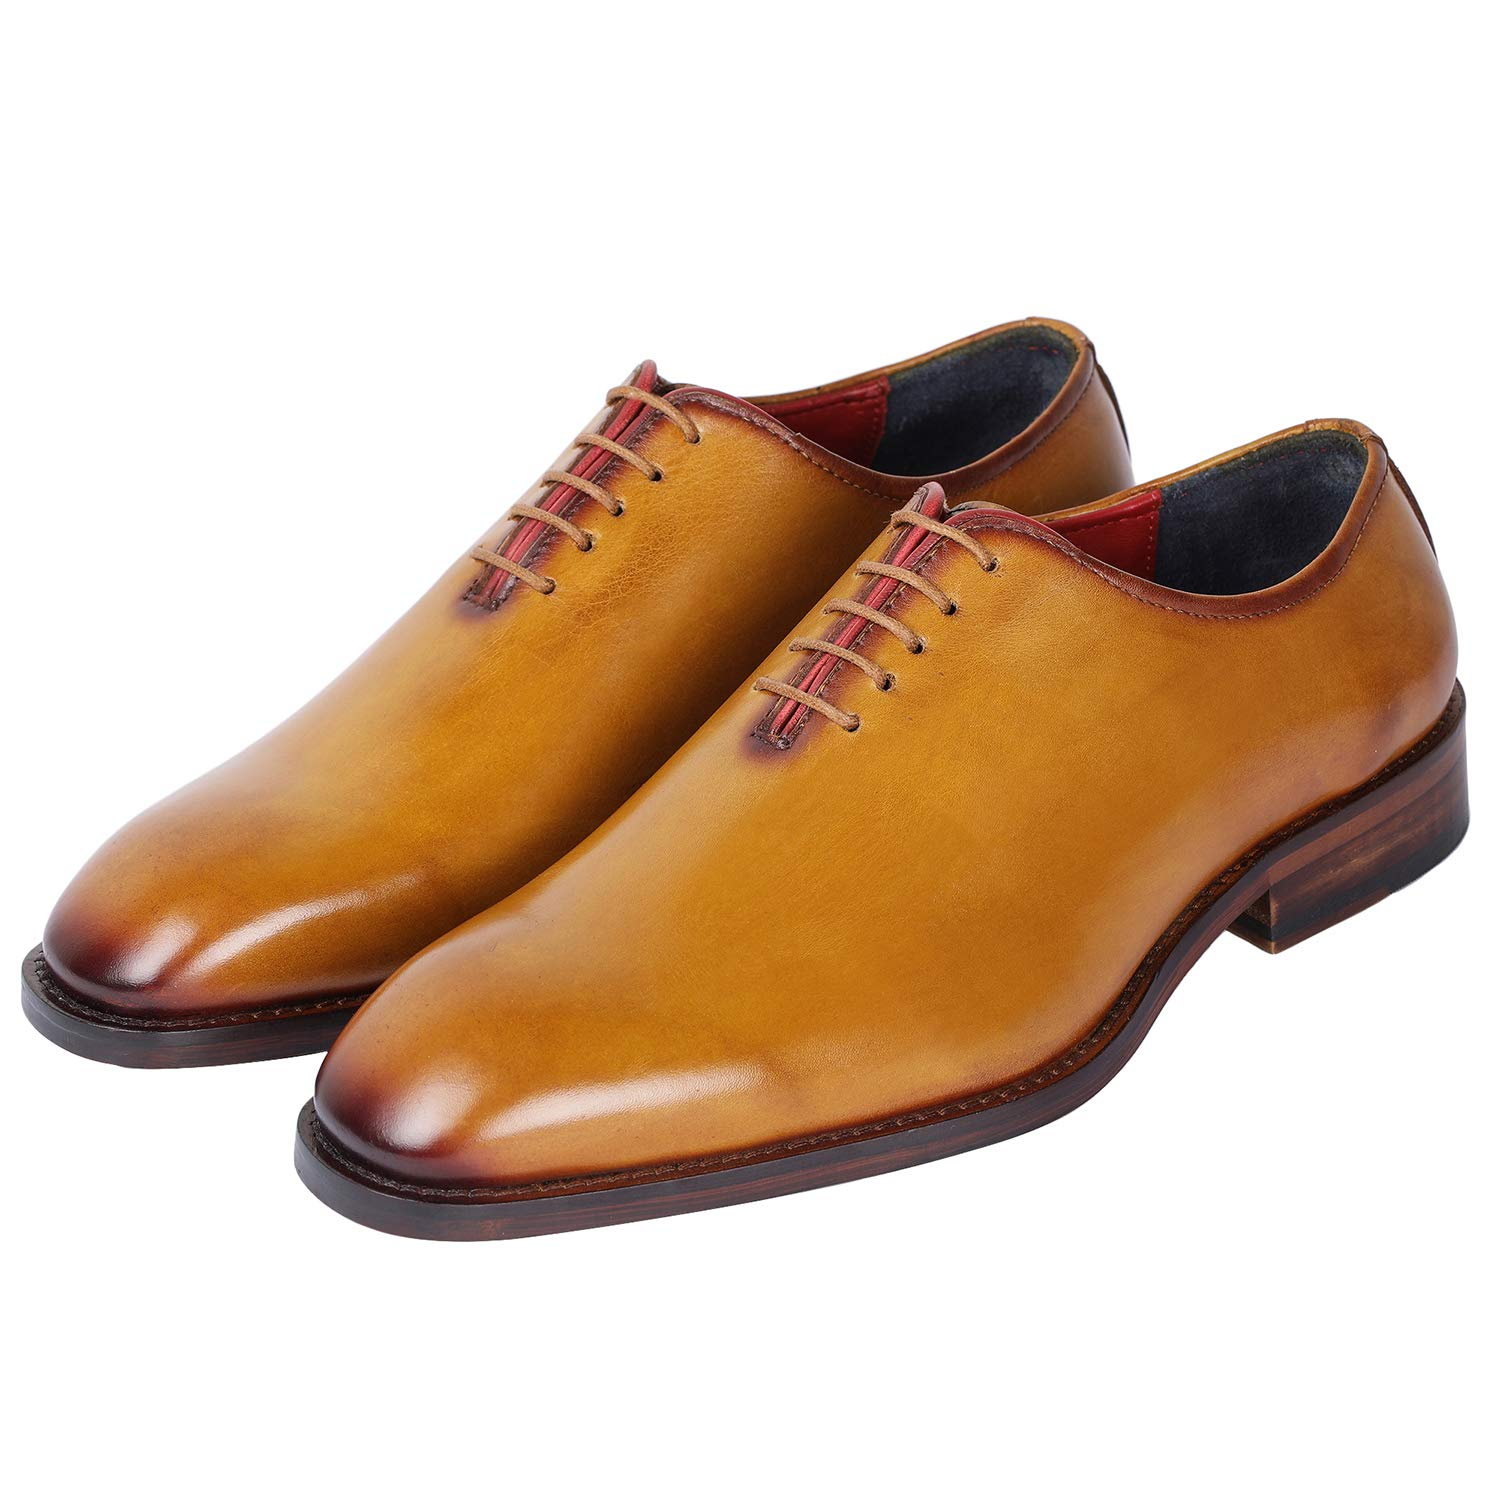 3fd71d3d0589b golden-1 Lethato Handcrafted Wholecut Oxford Men's Genuine Leather ...